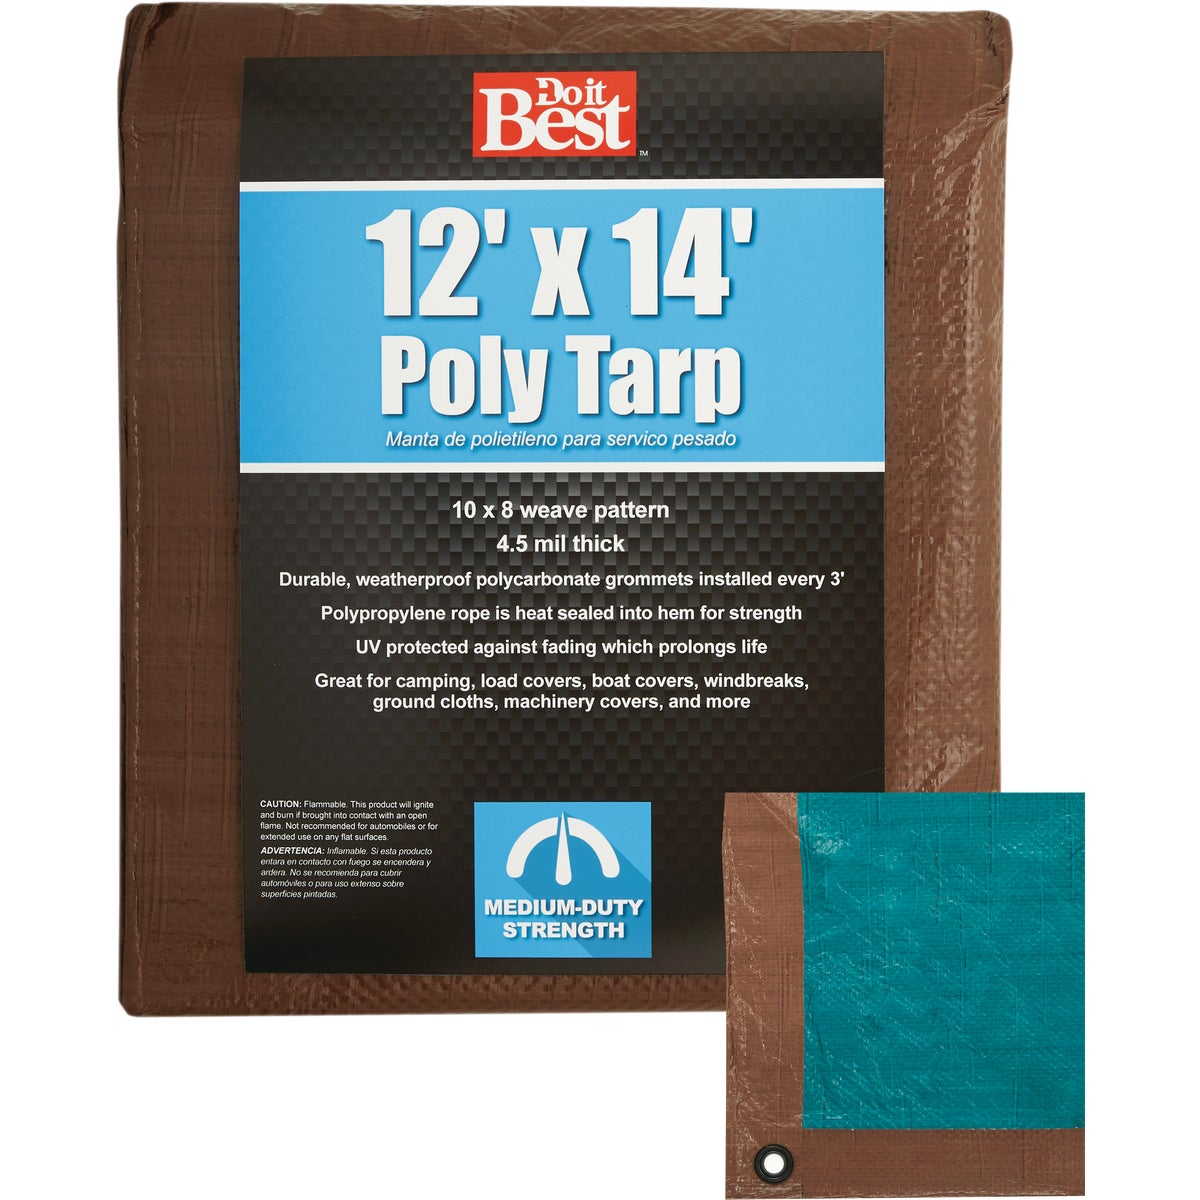 12X14 BR/GR MEDDUTY TARP - 764388 by Do it Best